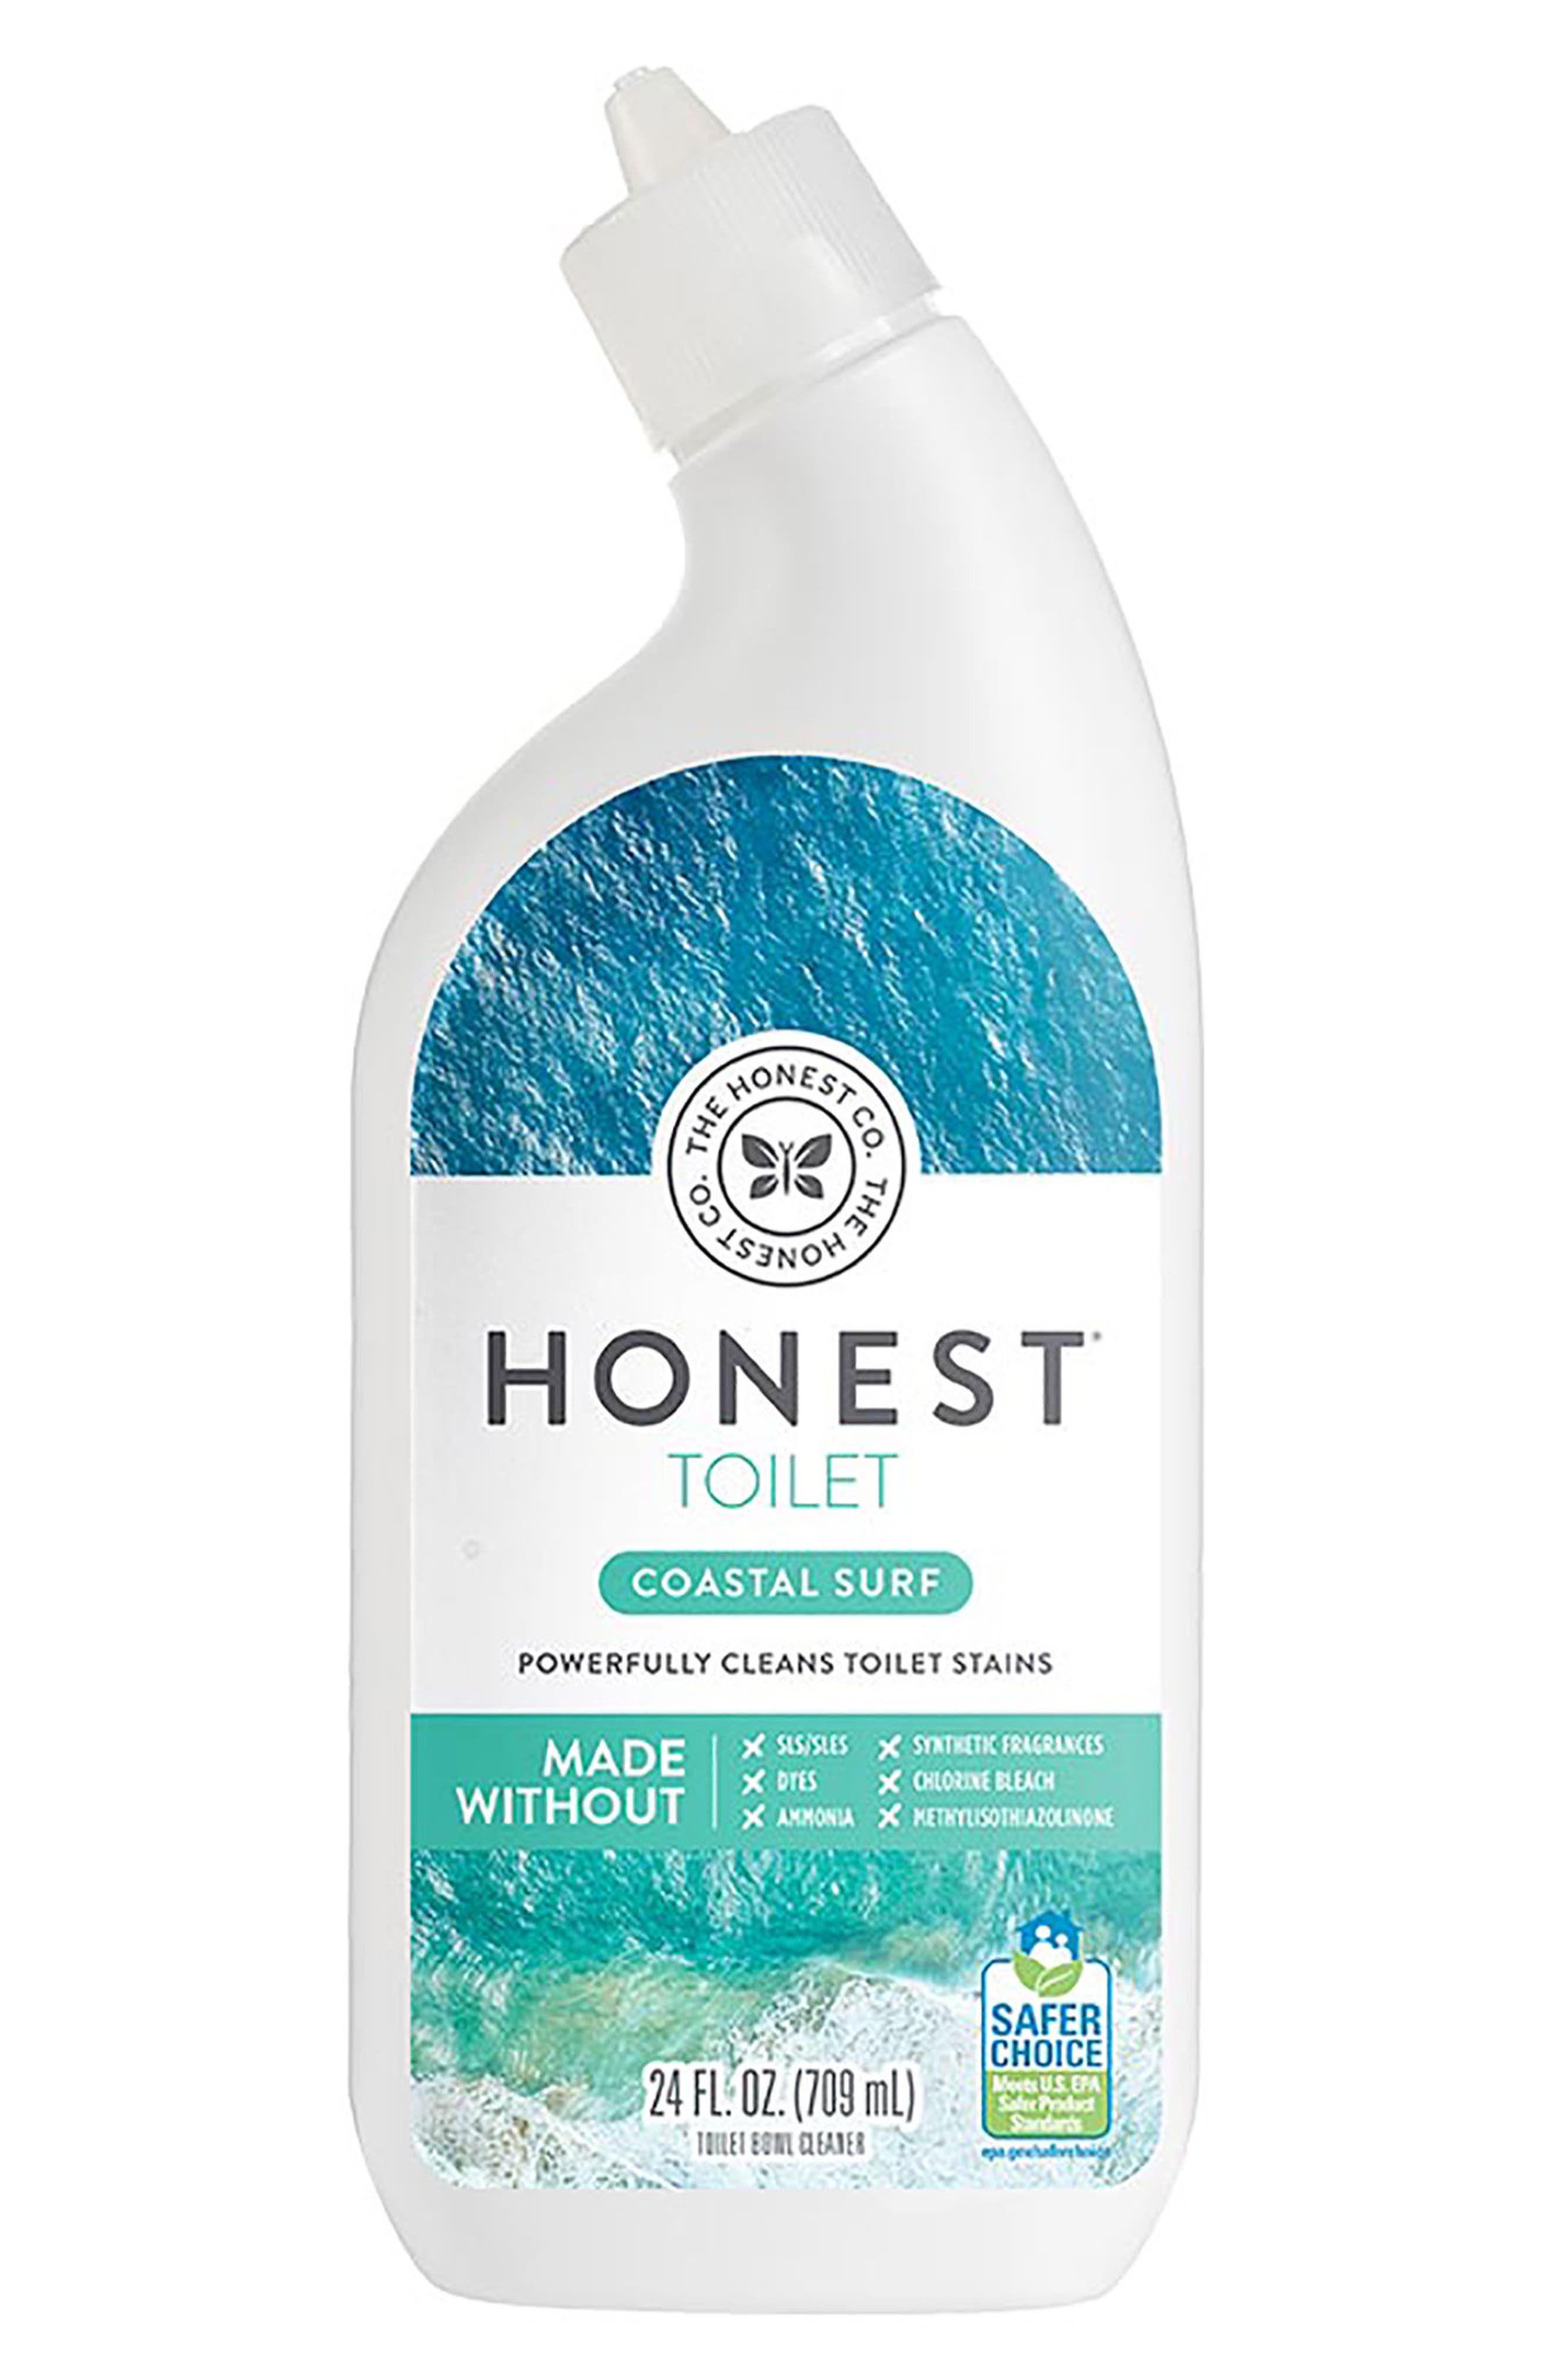 Main Image - The Honest Company Coastal Surf Toilet Cleaner